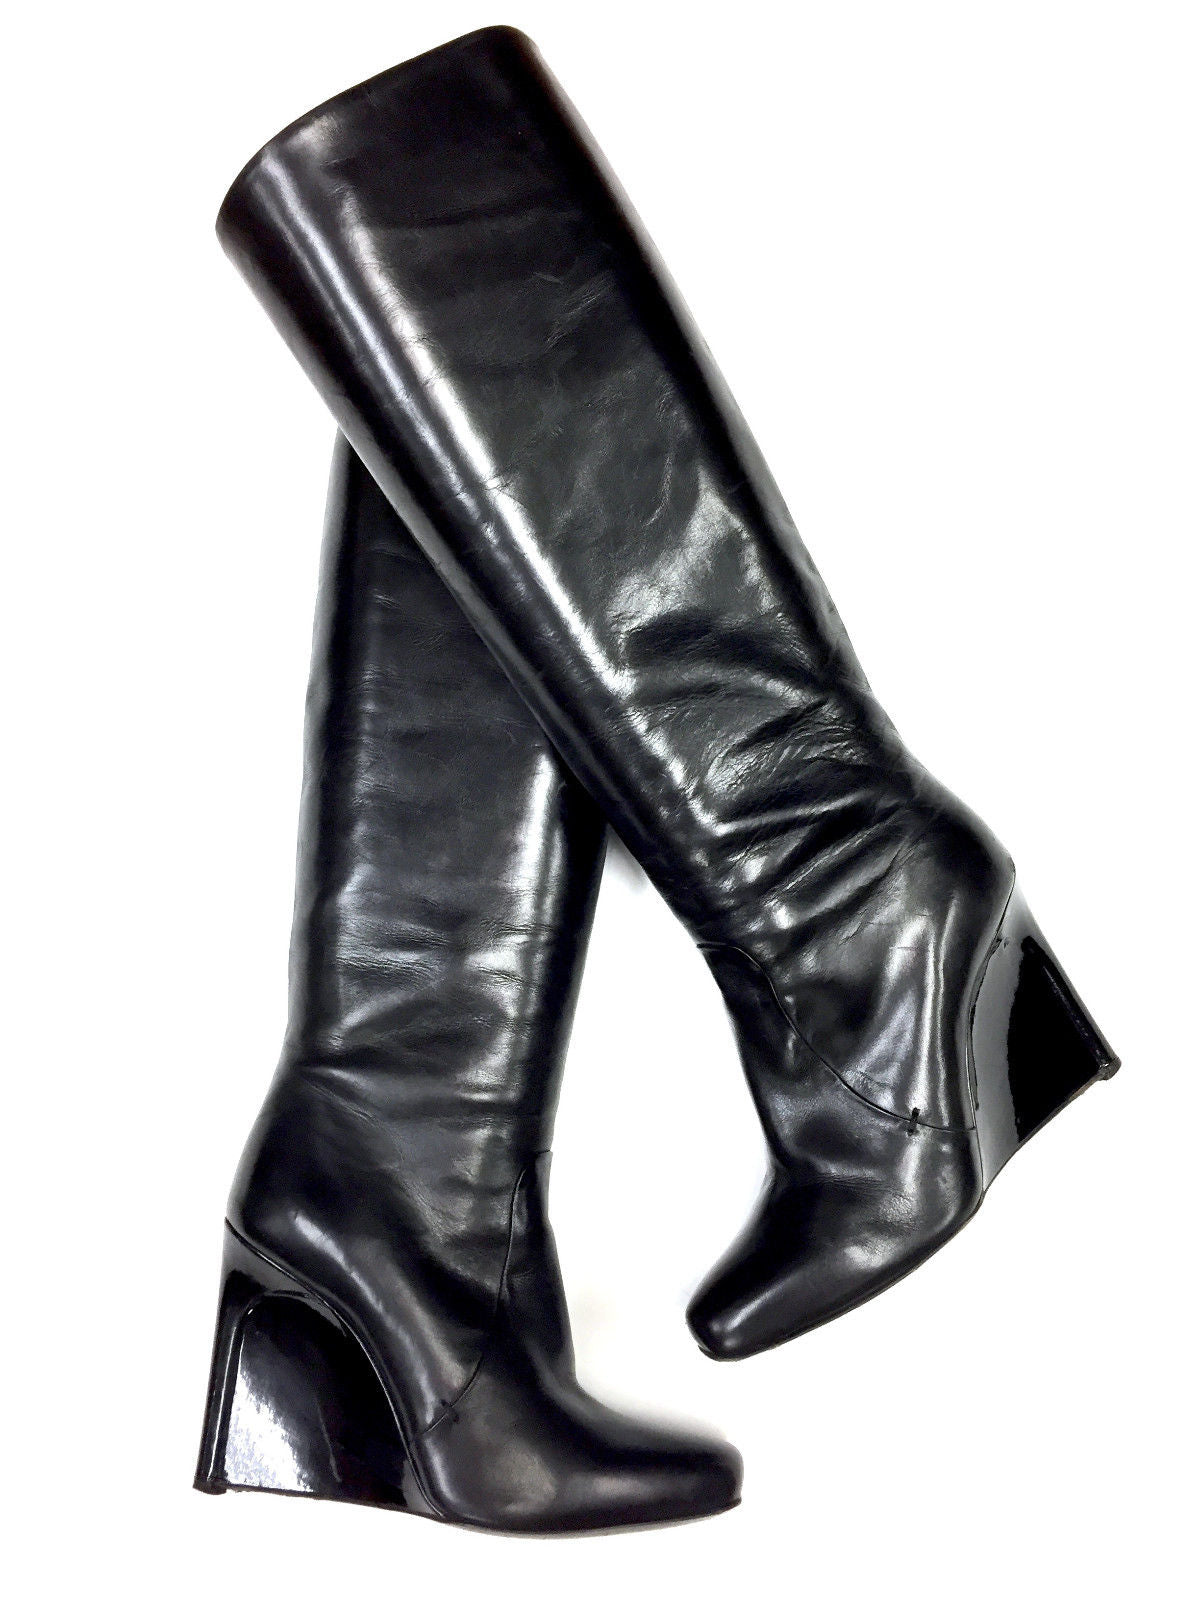 Calvin Klein Collection Black Leather Patent Leather Wedge